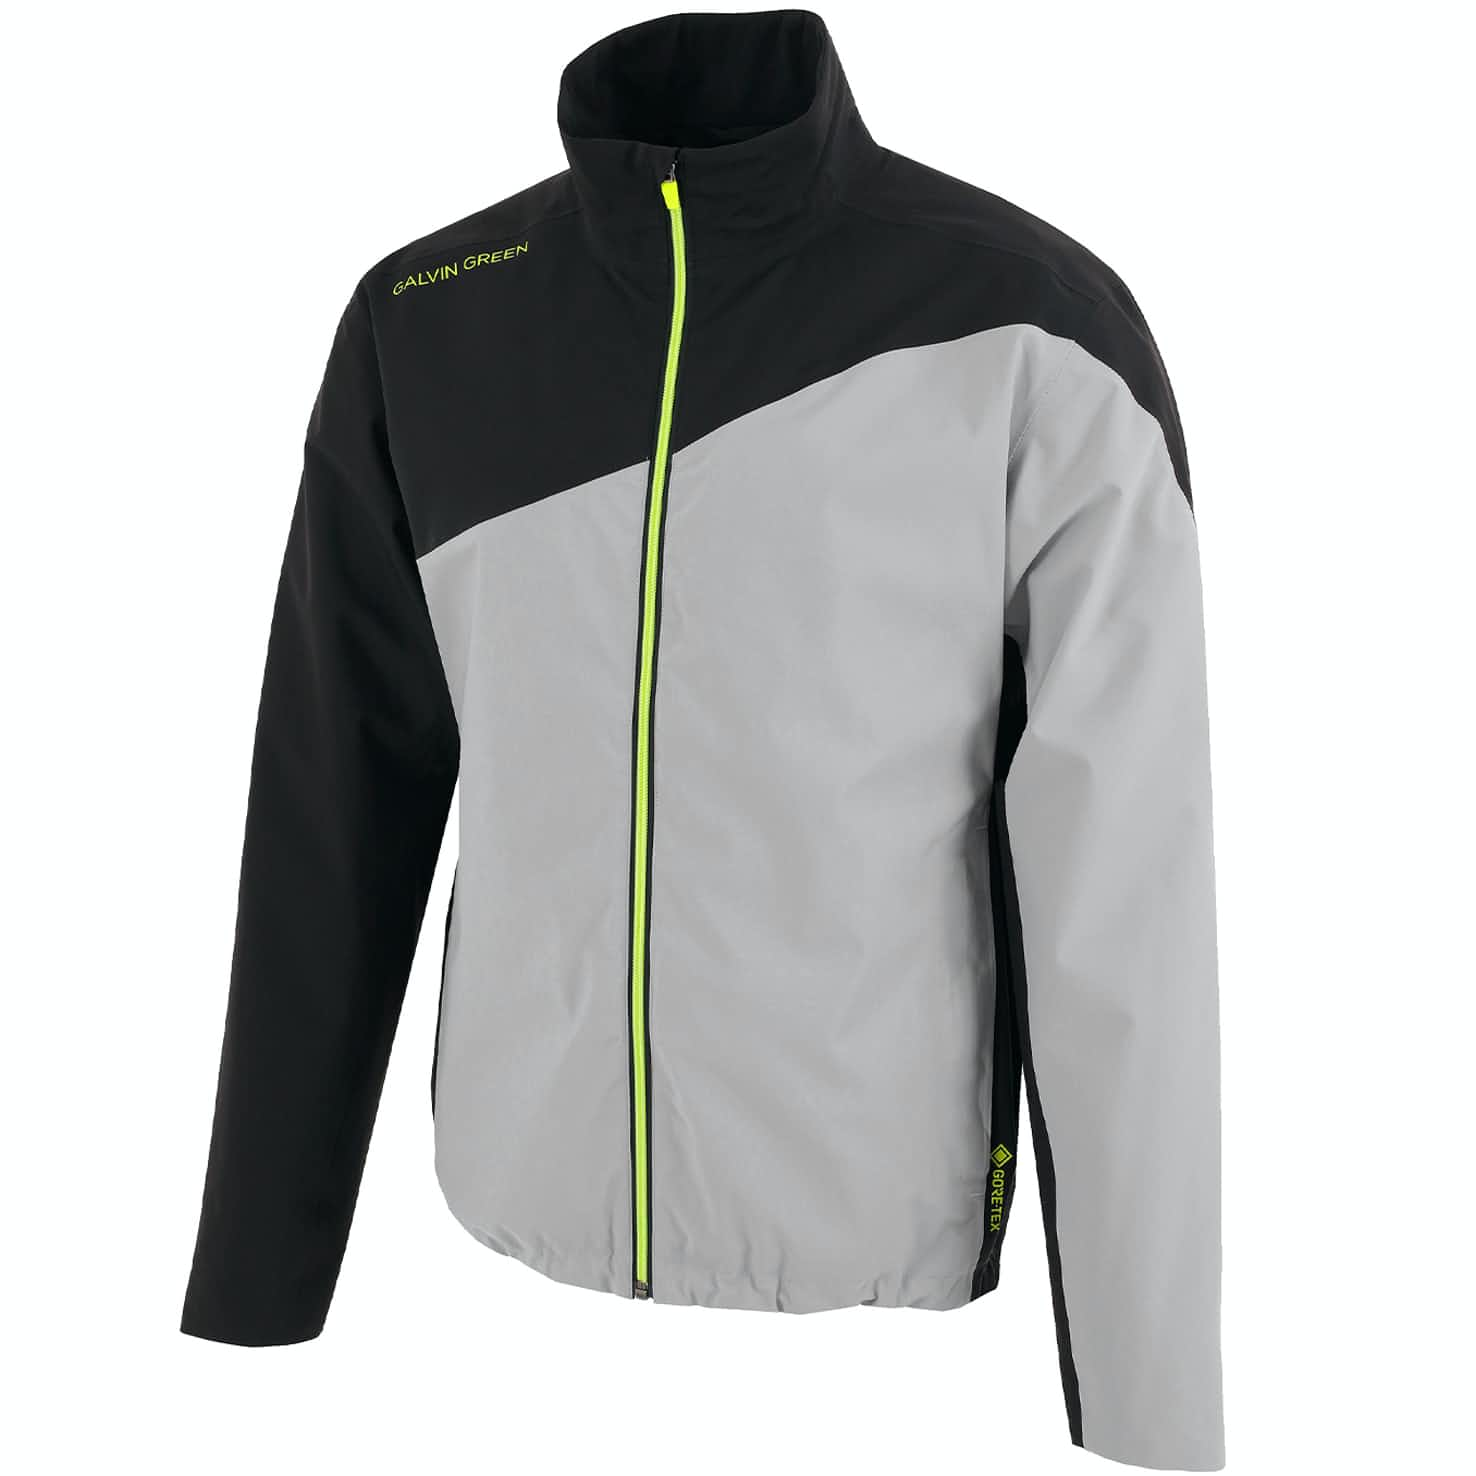 Aaron Gore-Tex Jacket Sharkskin/Black/Lime - 2020